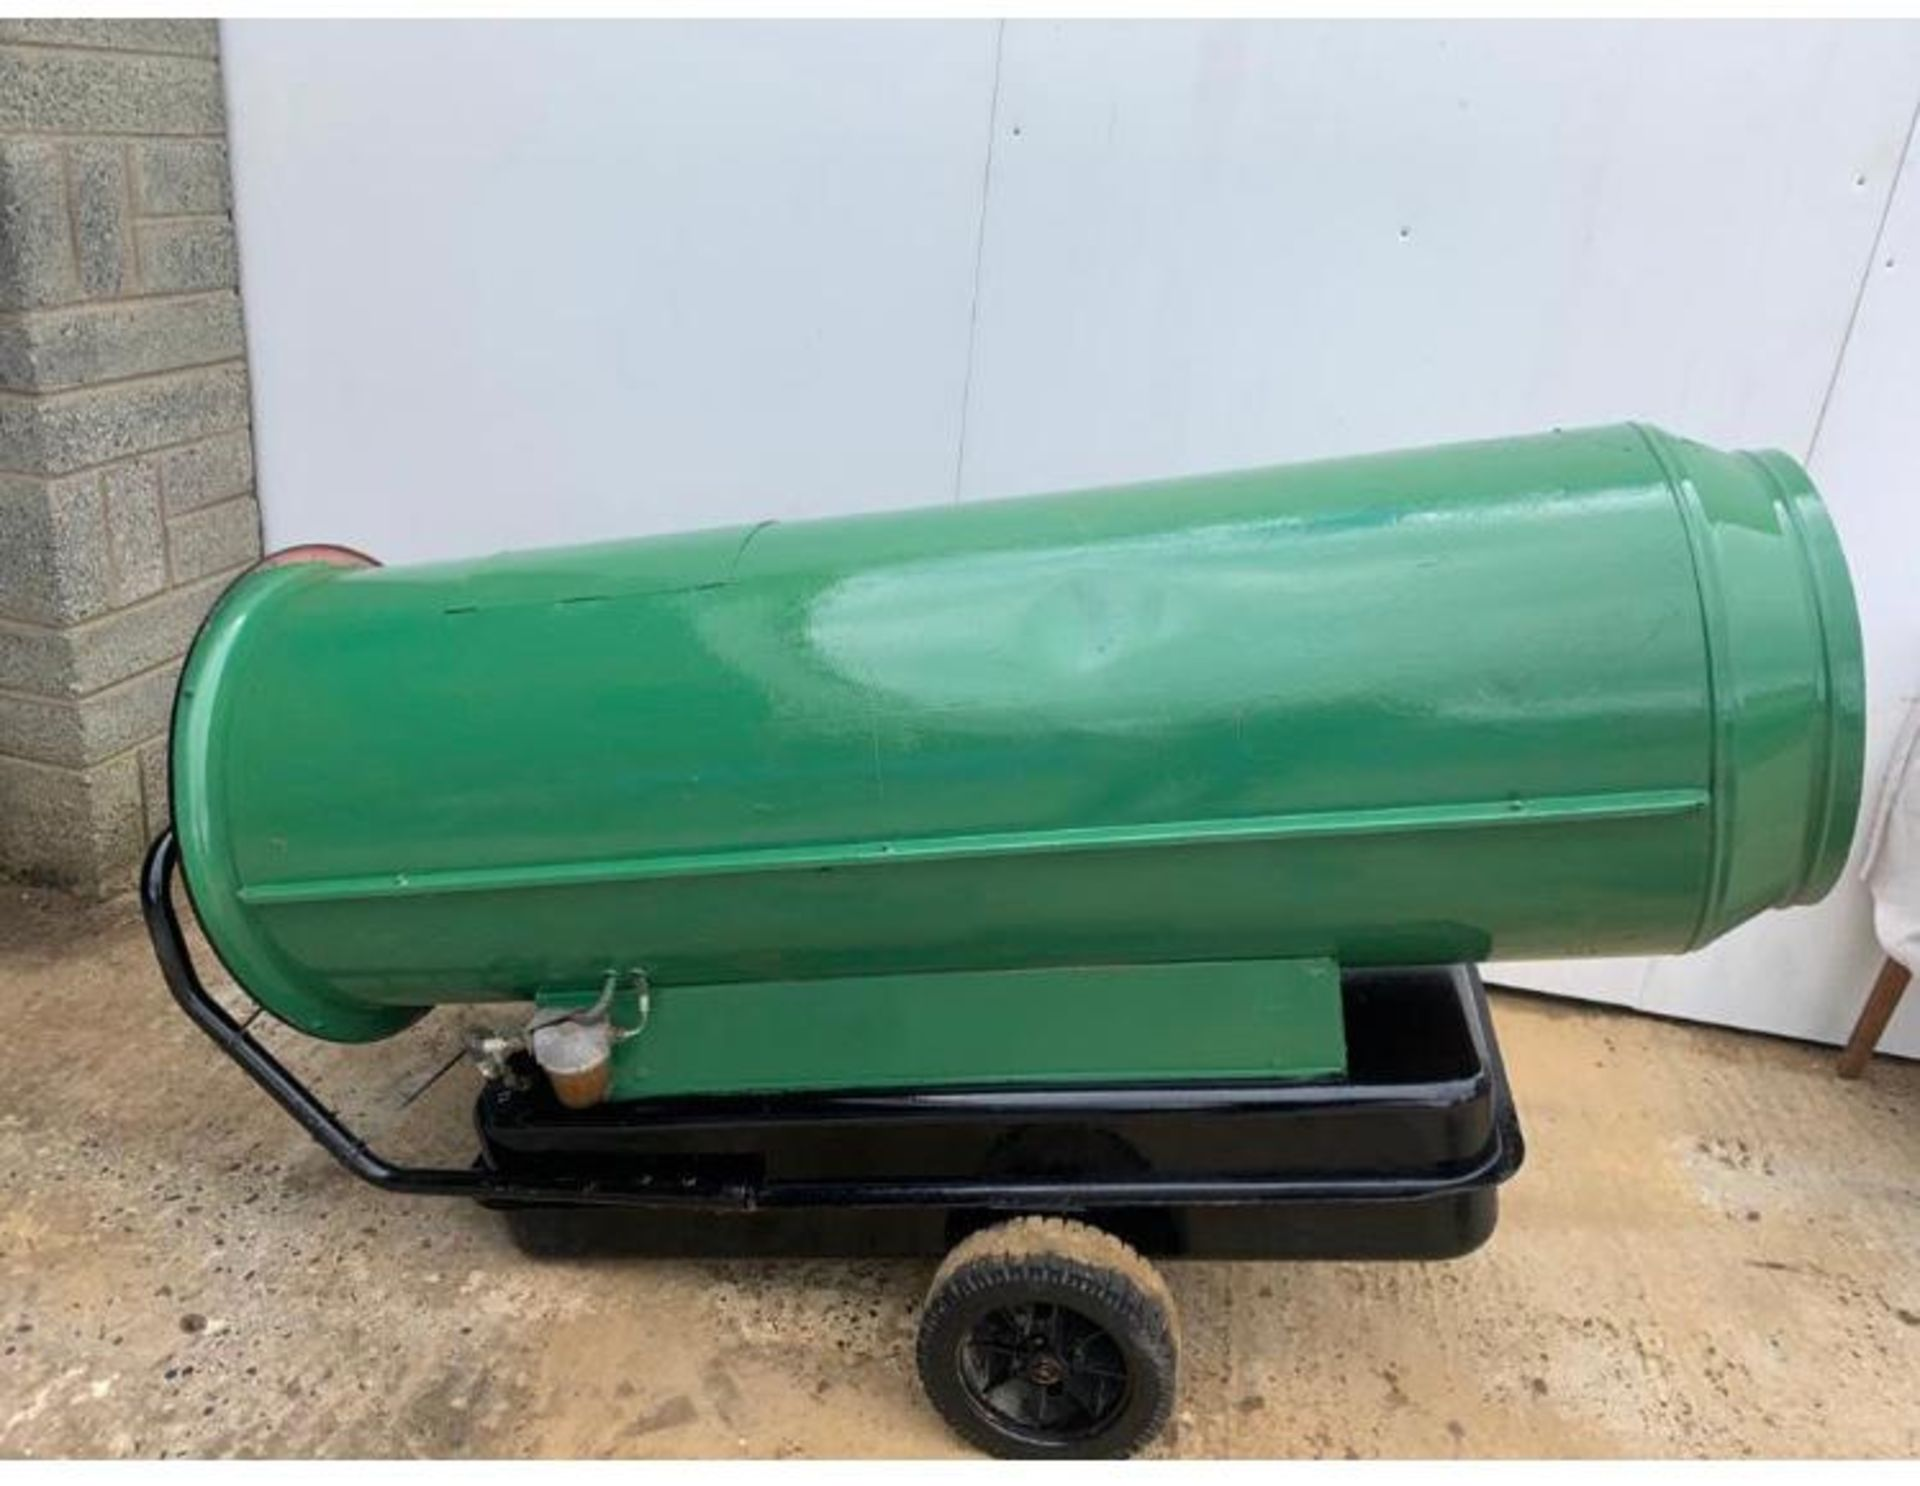 Diesel space heater delivery £120 anywhere uk *PLUS VAT* - Image 3 of 4